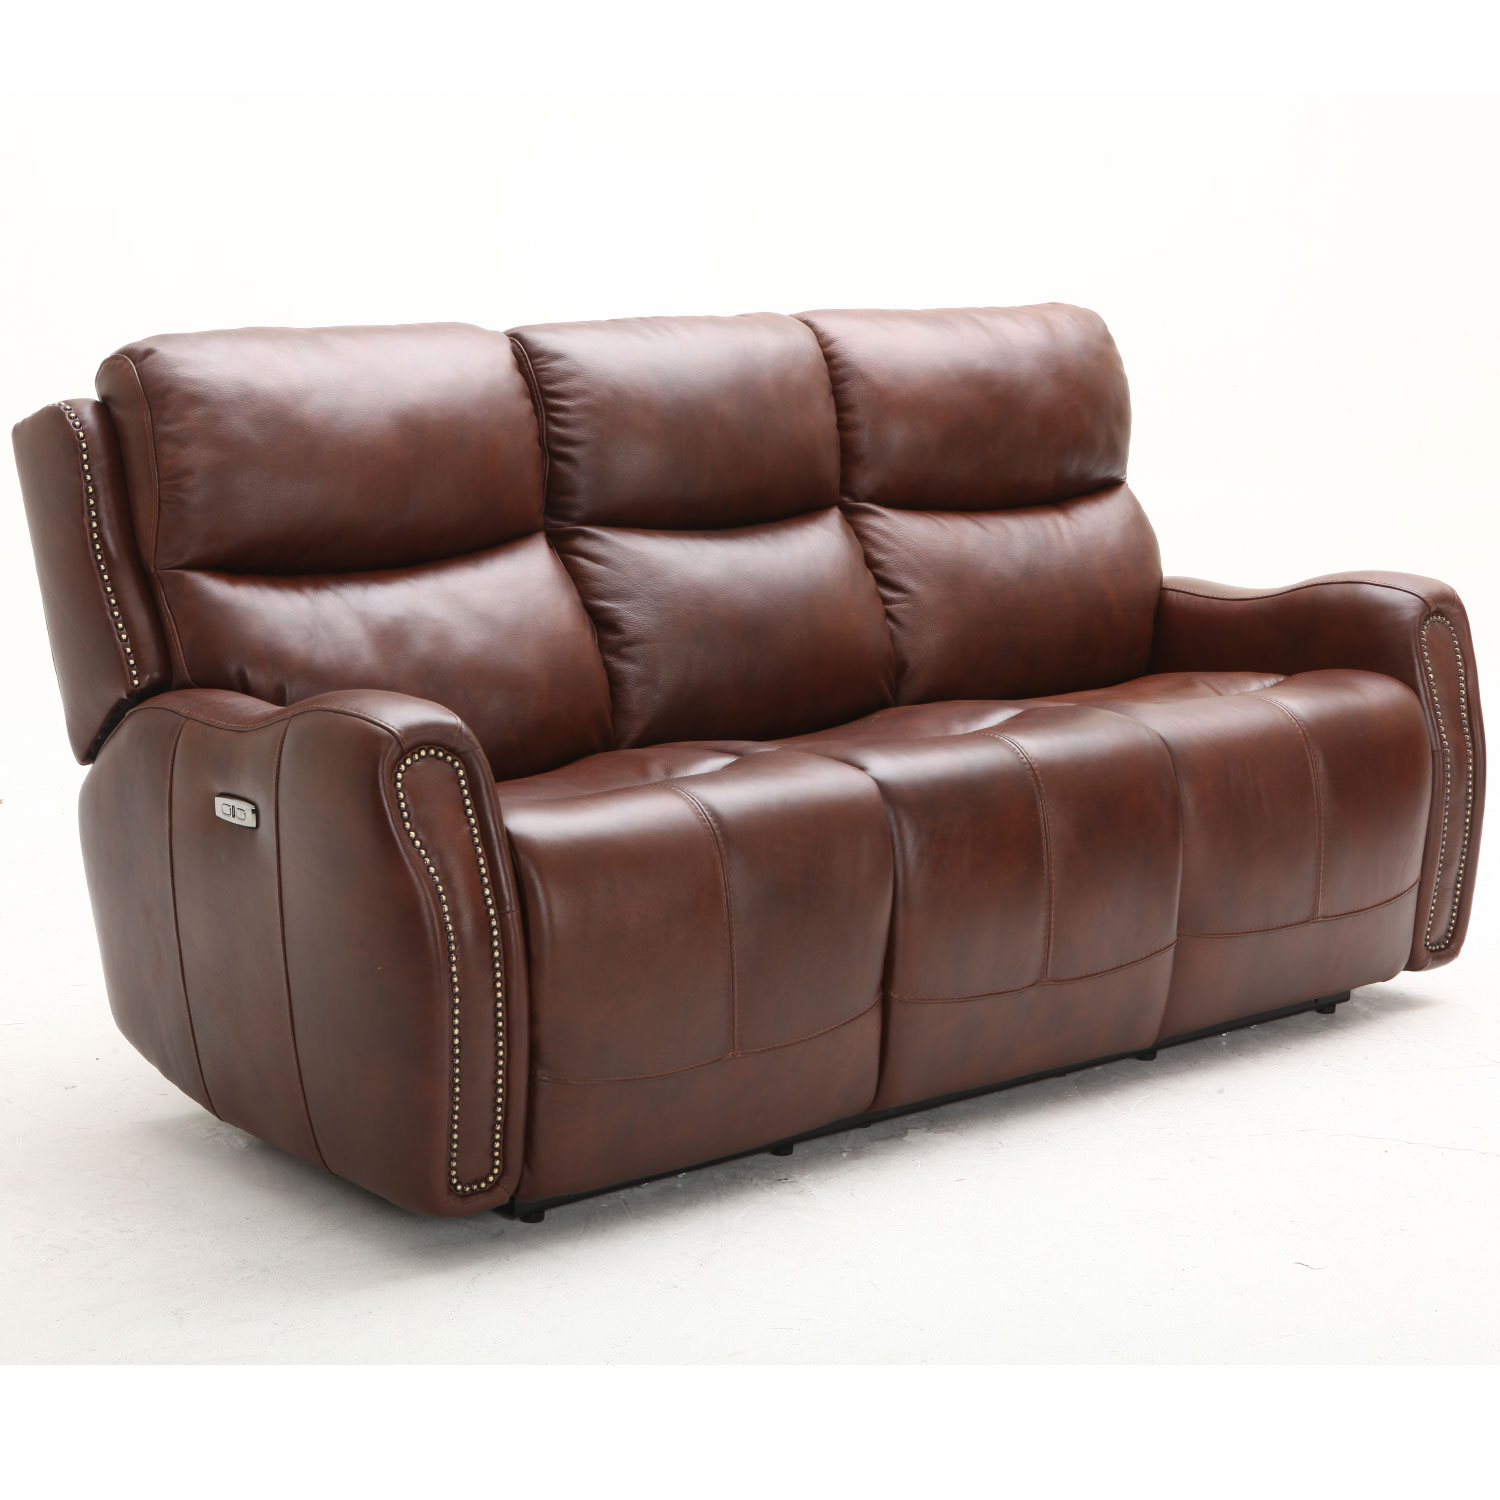 Southern Motion 405 61p 97921 Ellington Reclining Sofa W